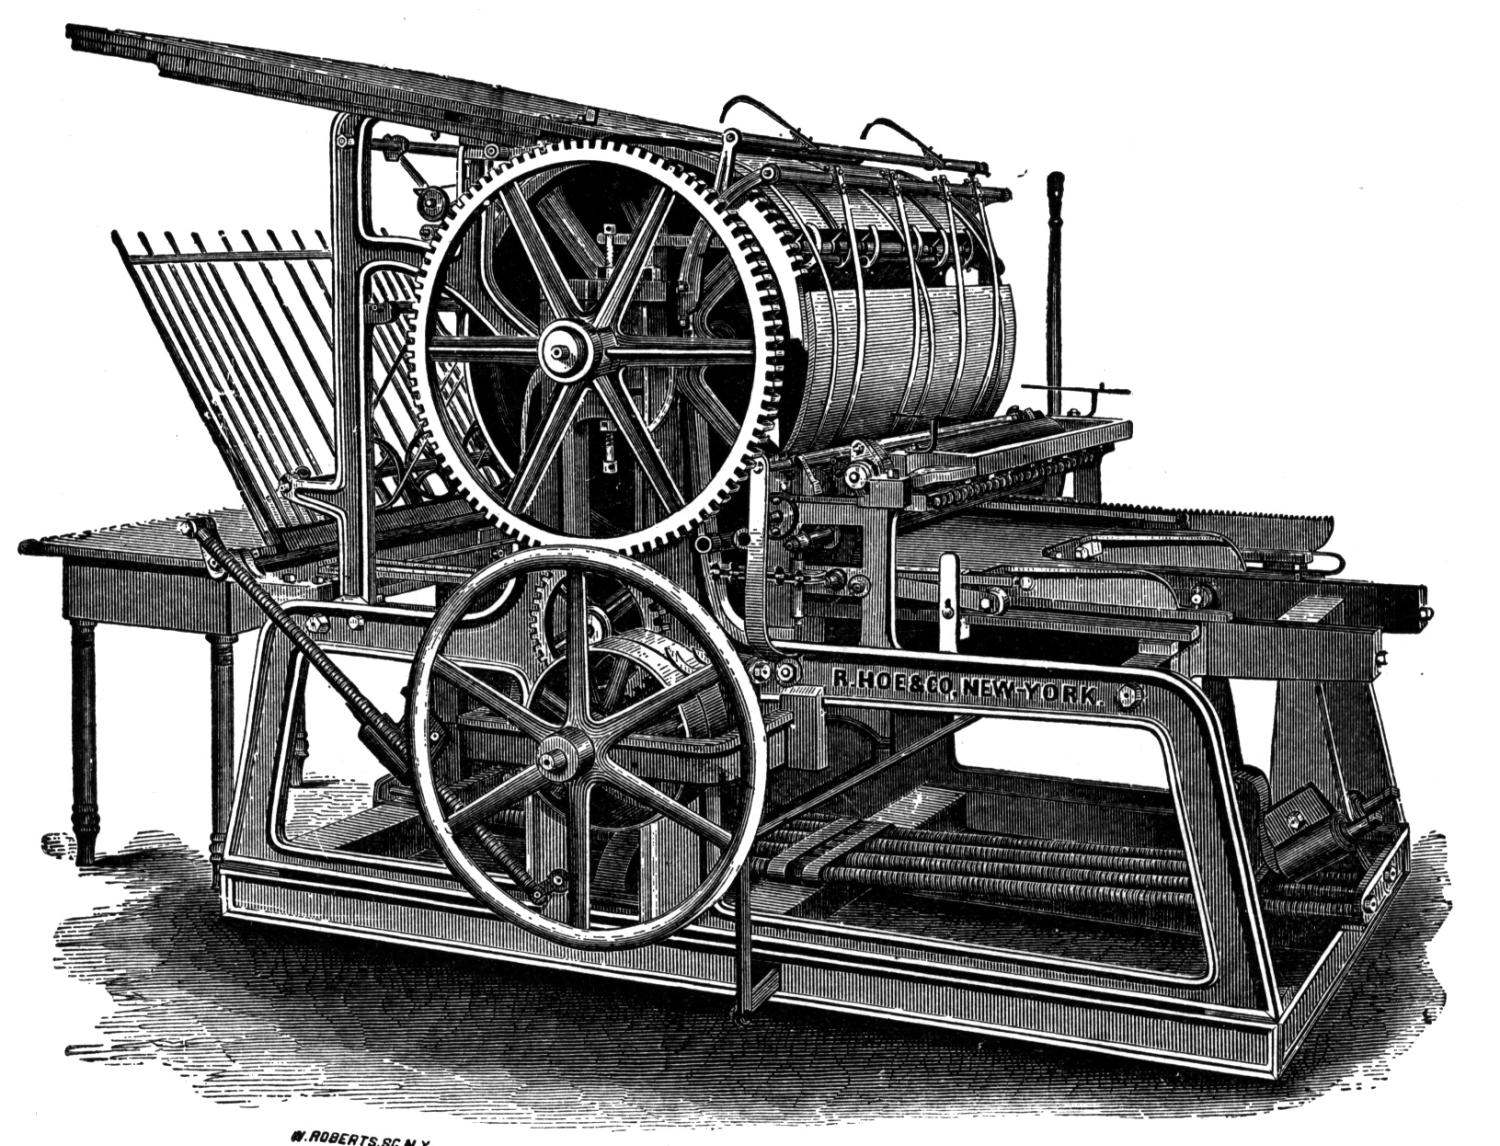 First printing press